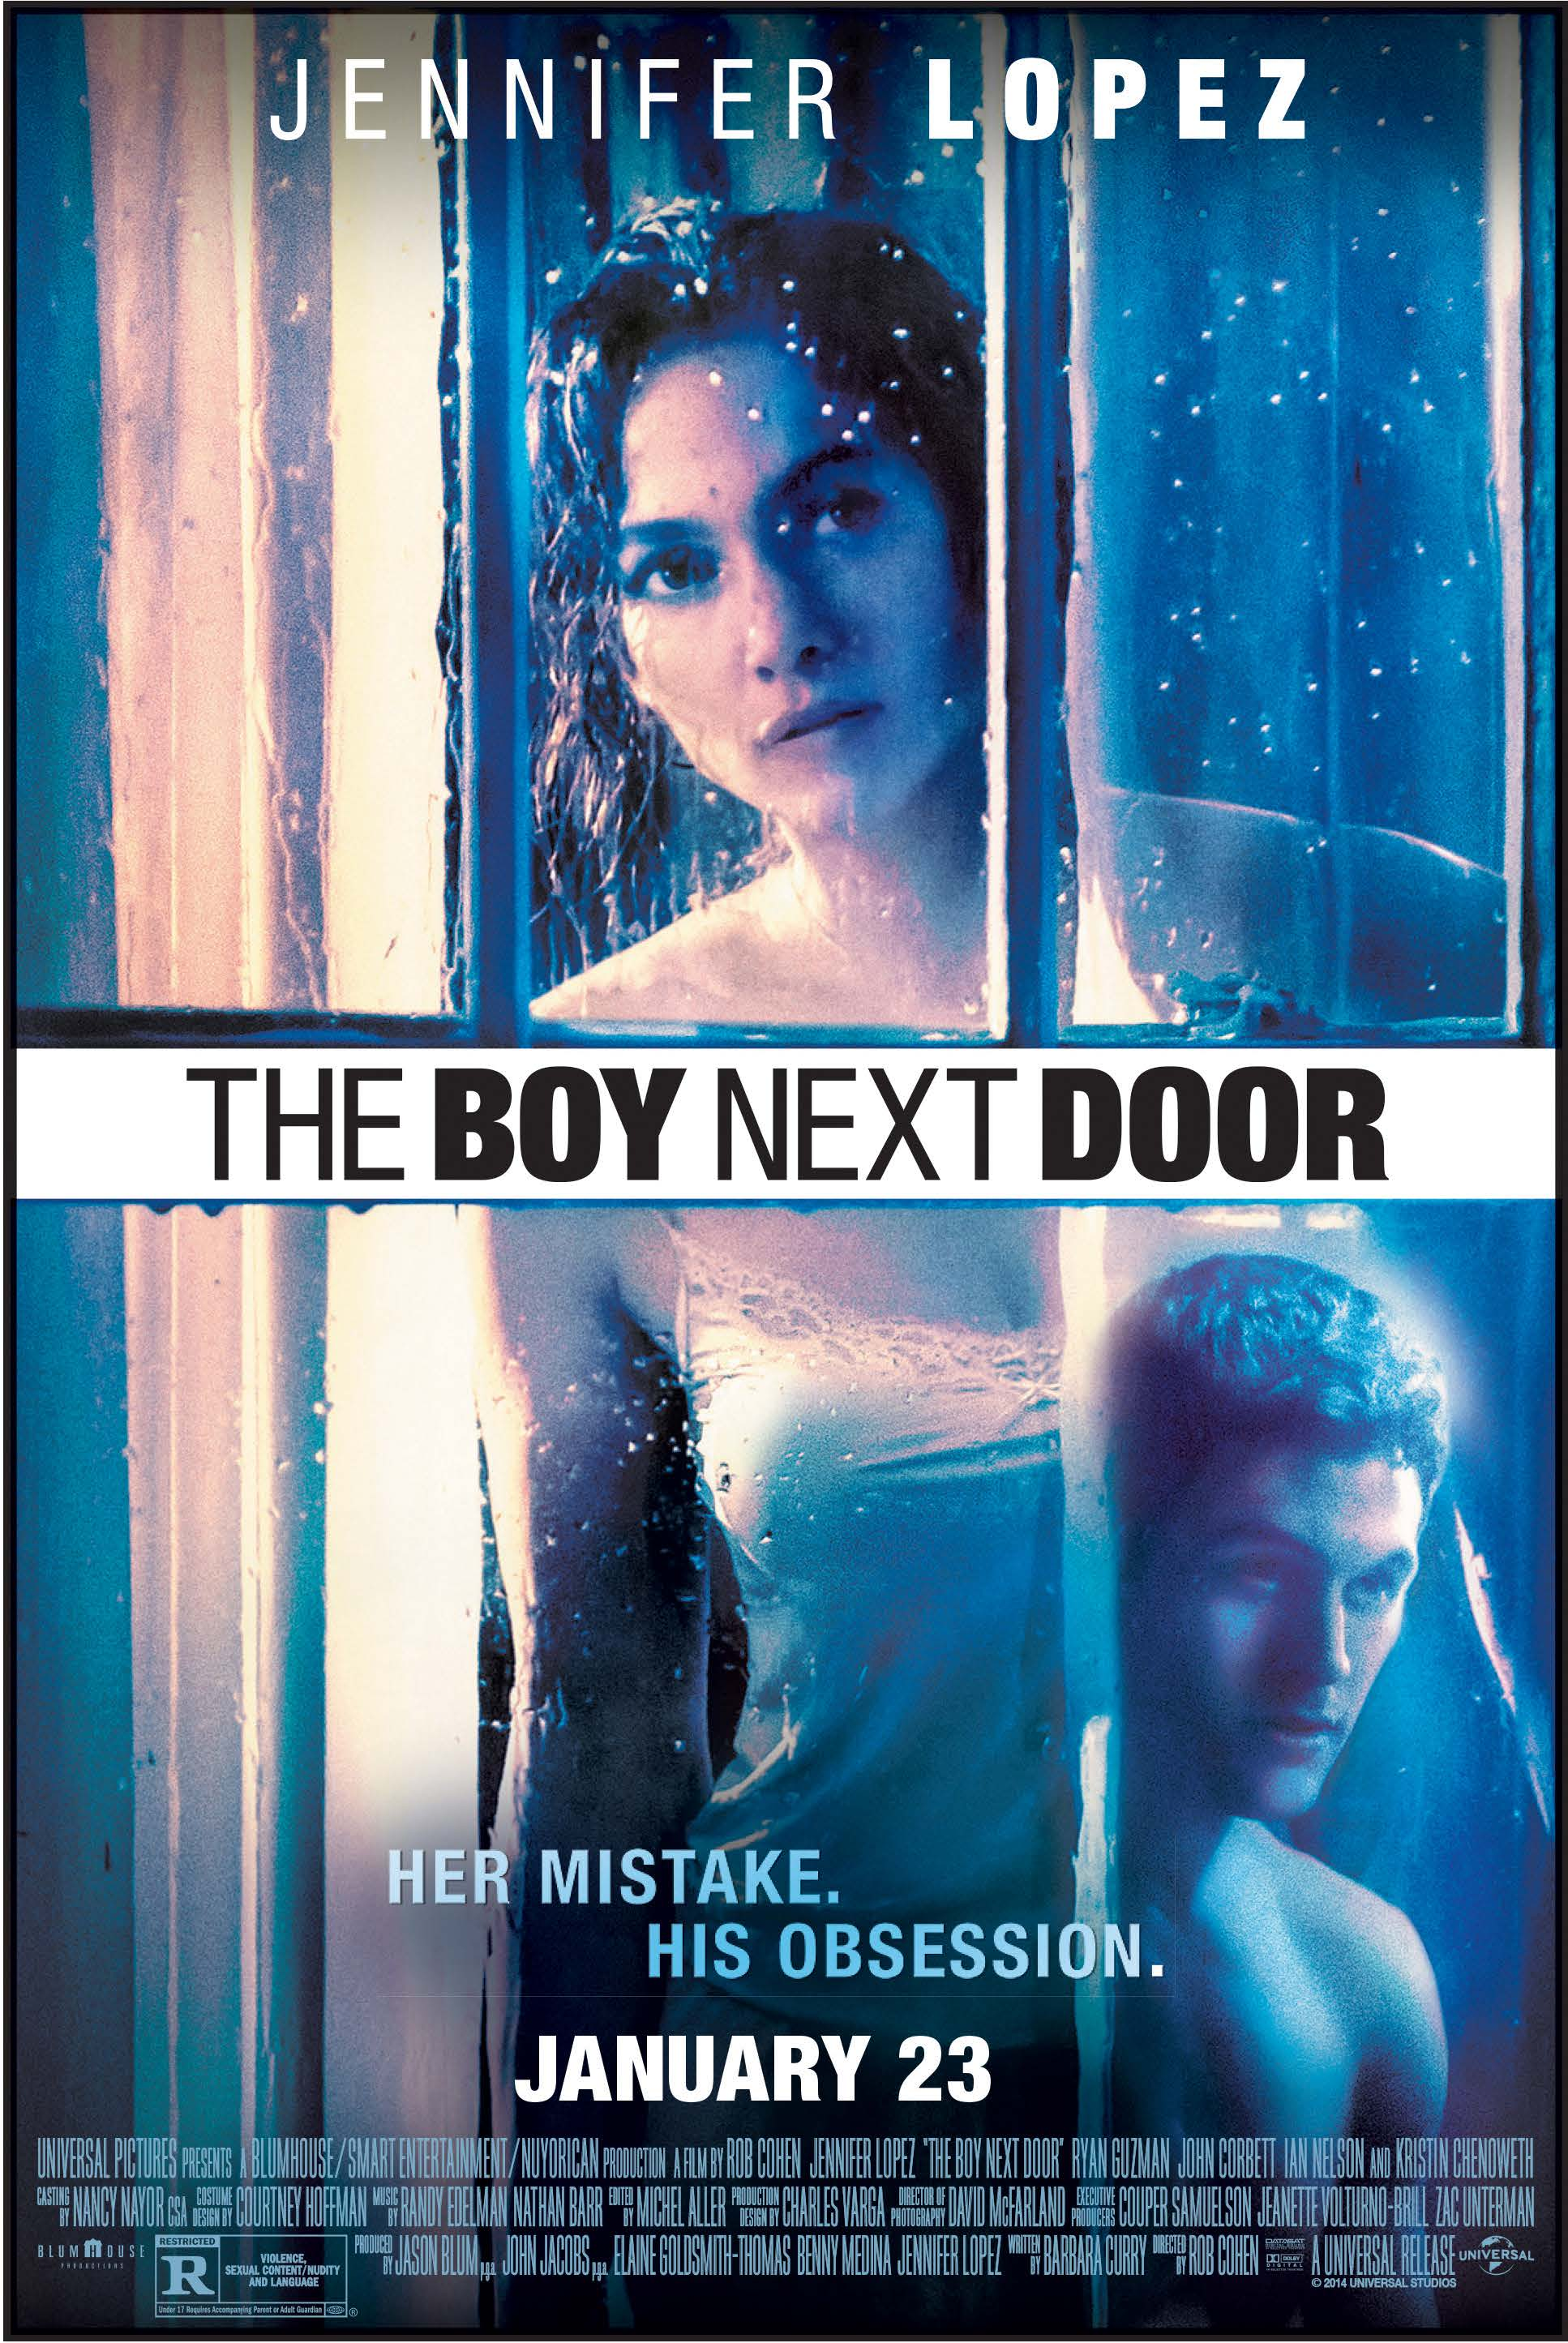 Win passes to 'The Boy Next Door' starring Jennifer Lopez